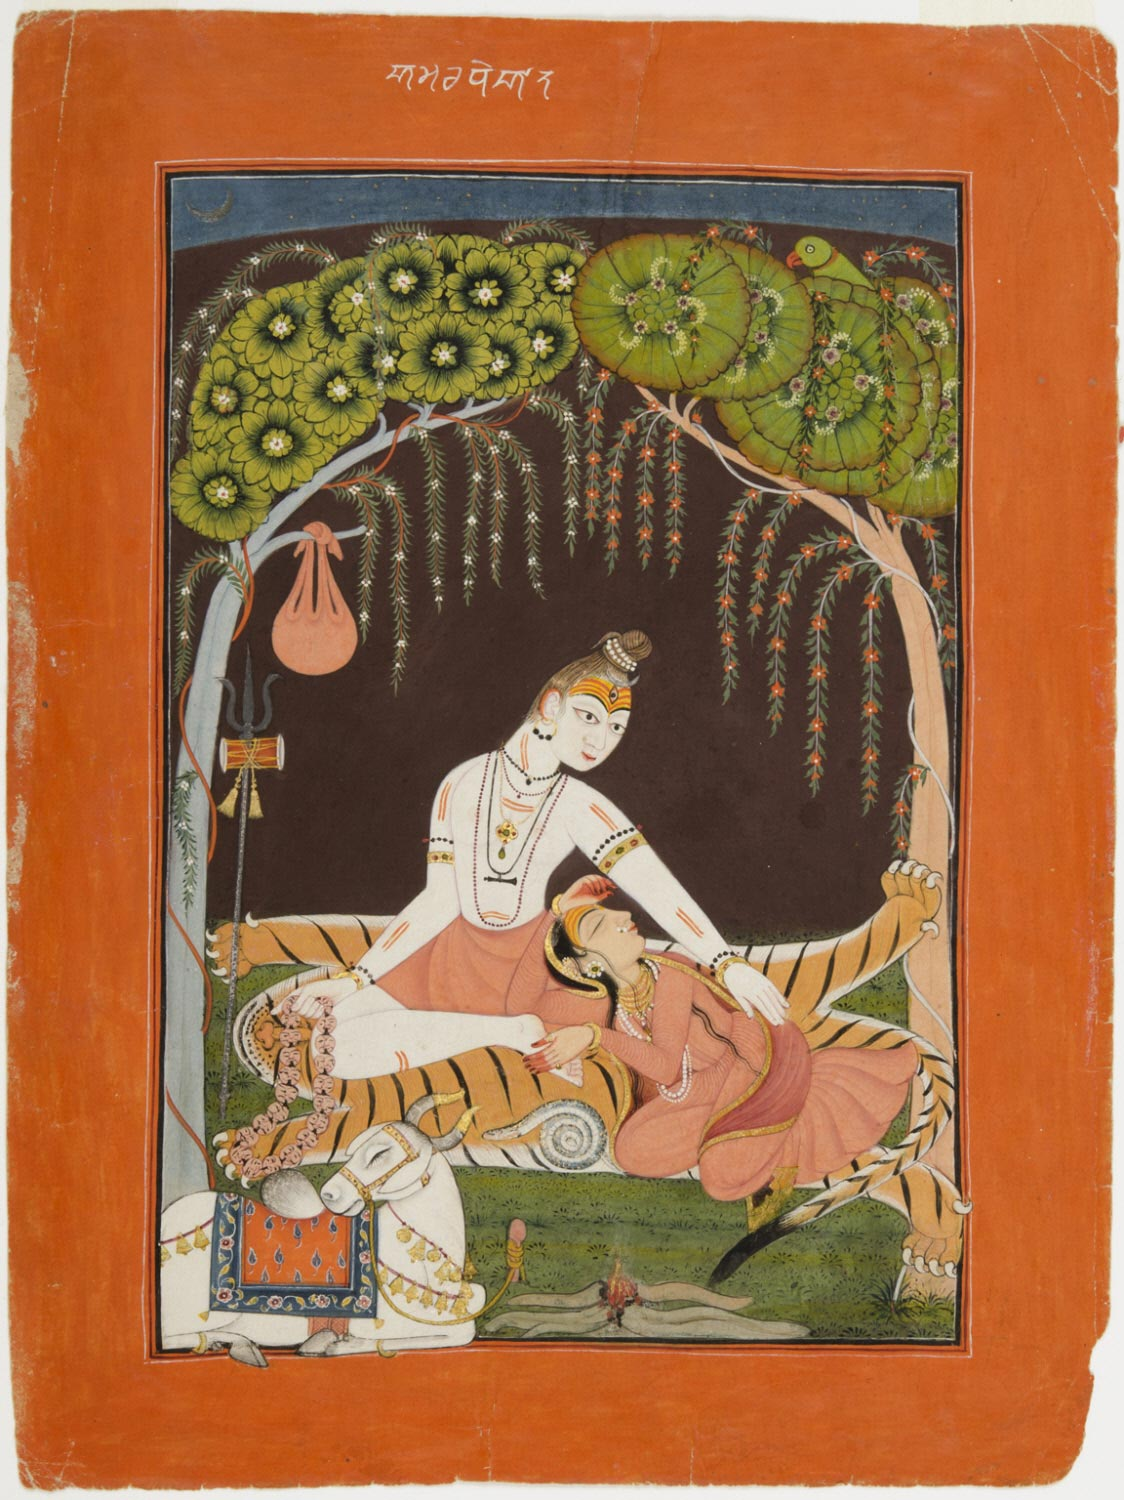 Shiva and his wife Parvati at home in the Himalayas